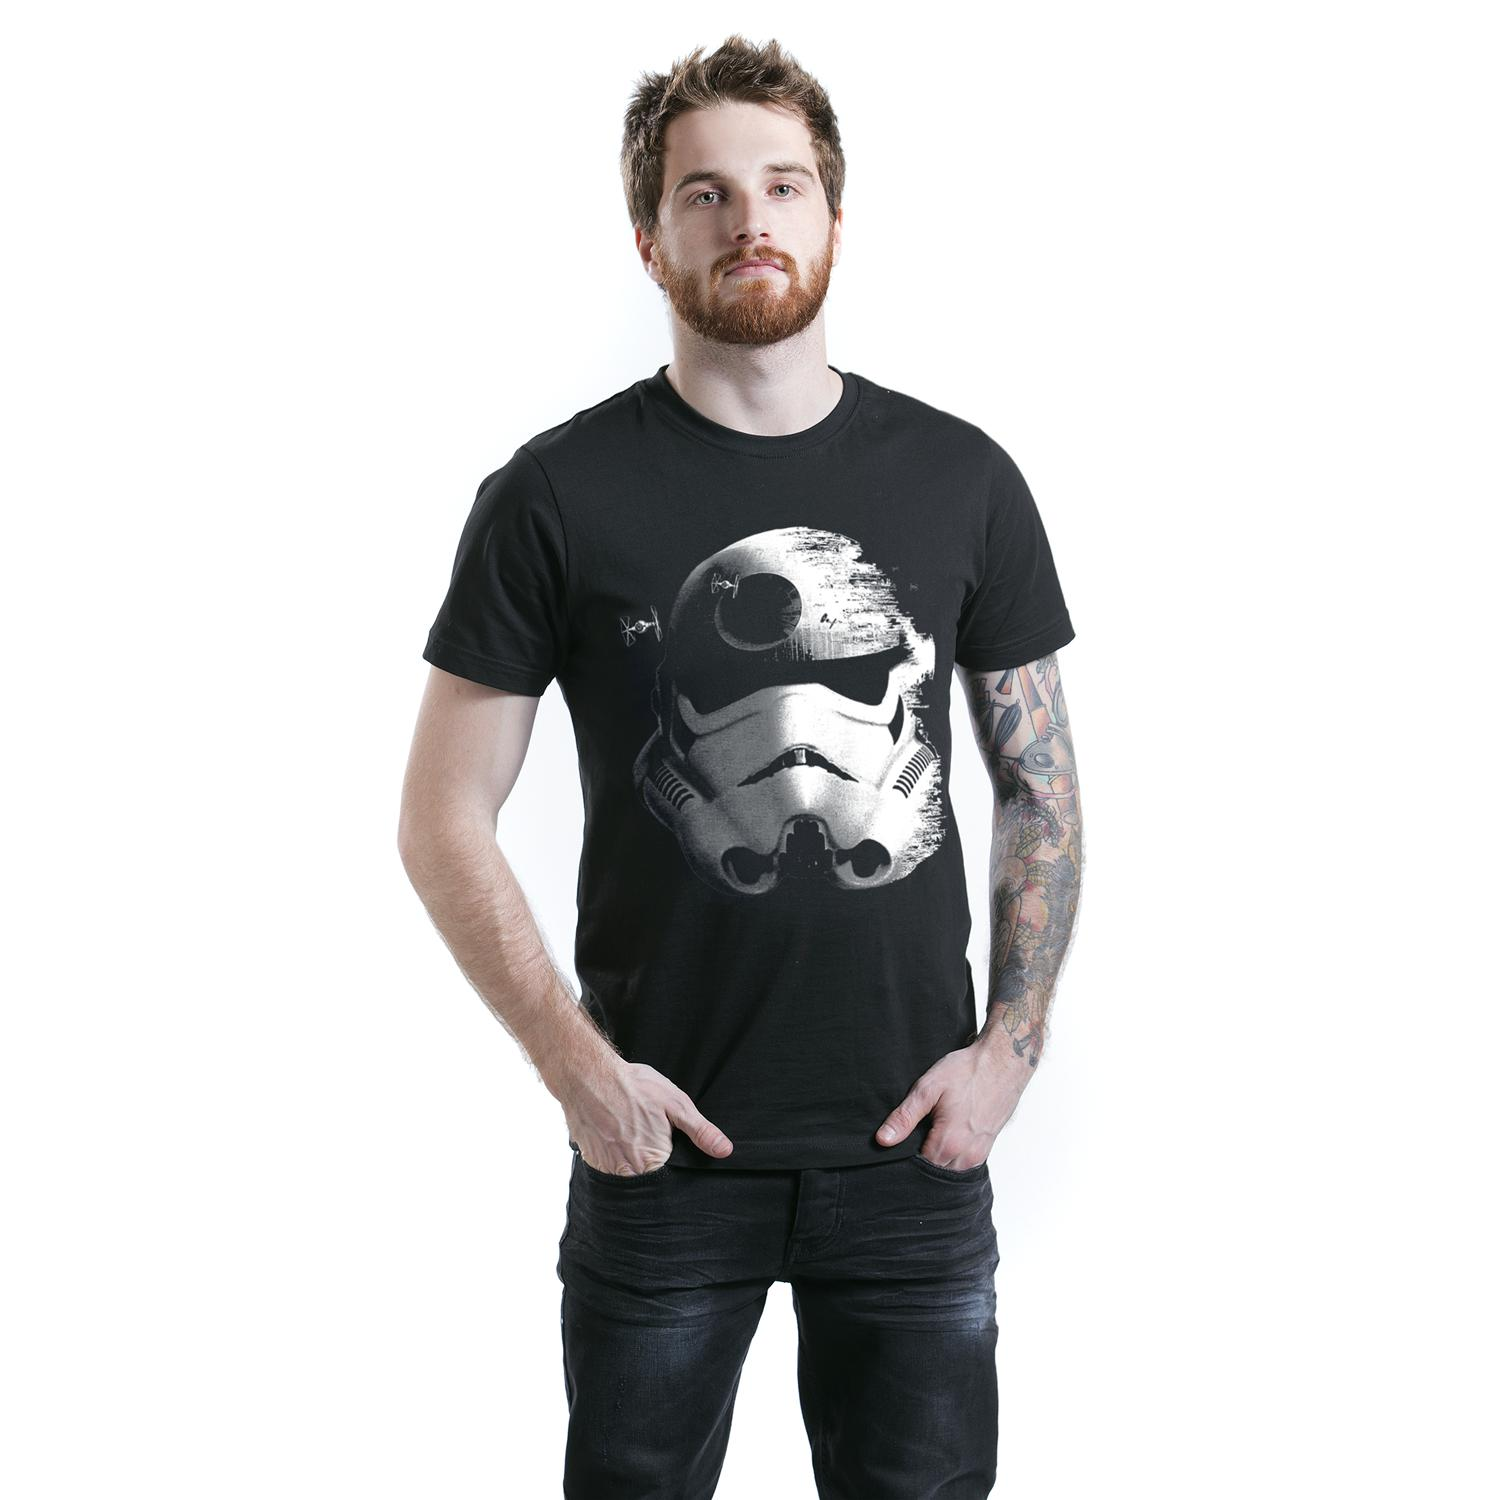 Stormtrooper - Deathstar T-shirt Design man